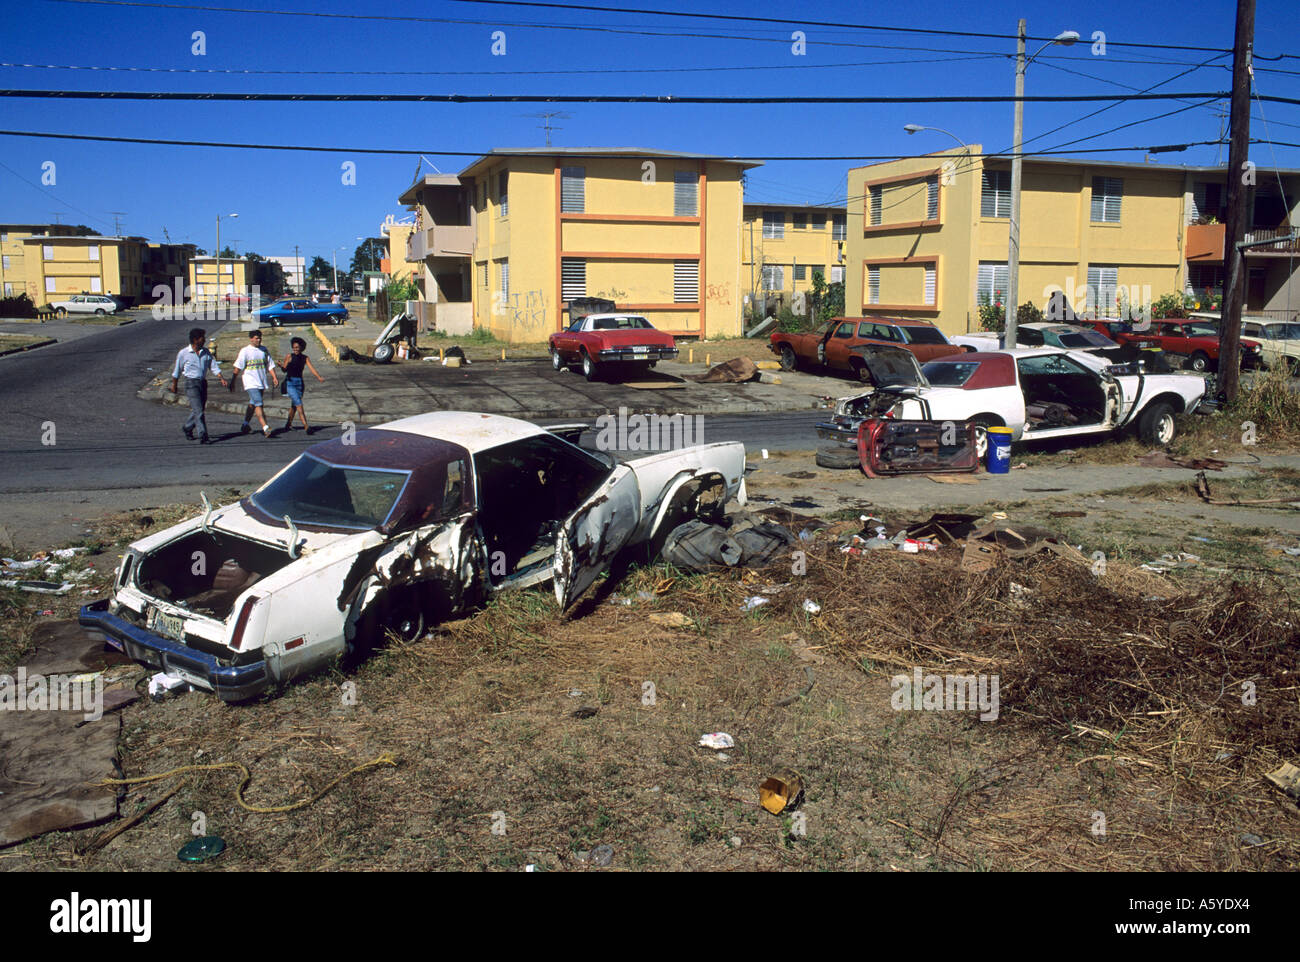 Public housing projects in Mayaguez, Puerto Rico. - Stock Image